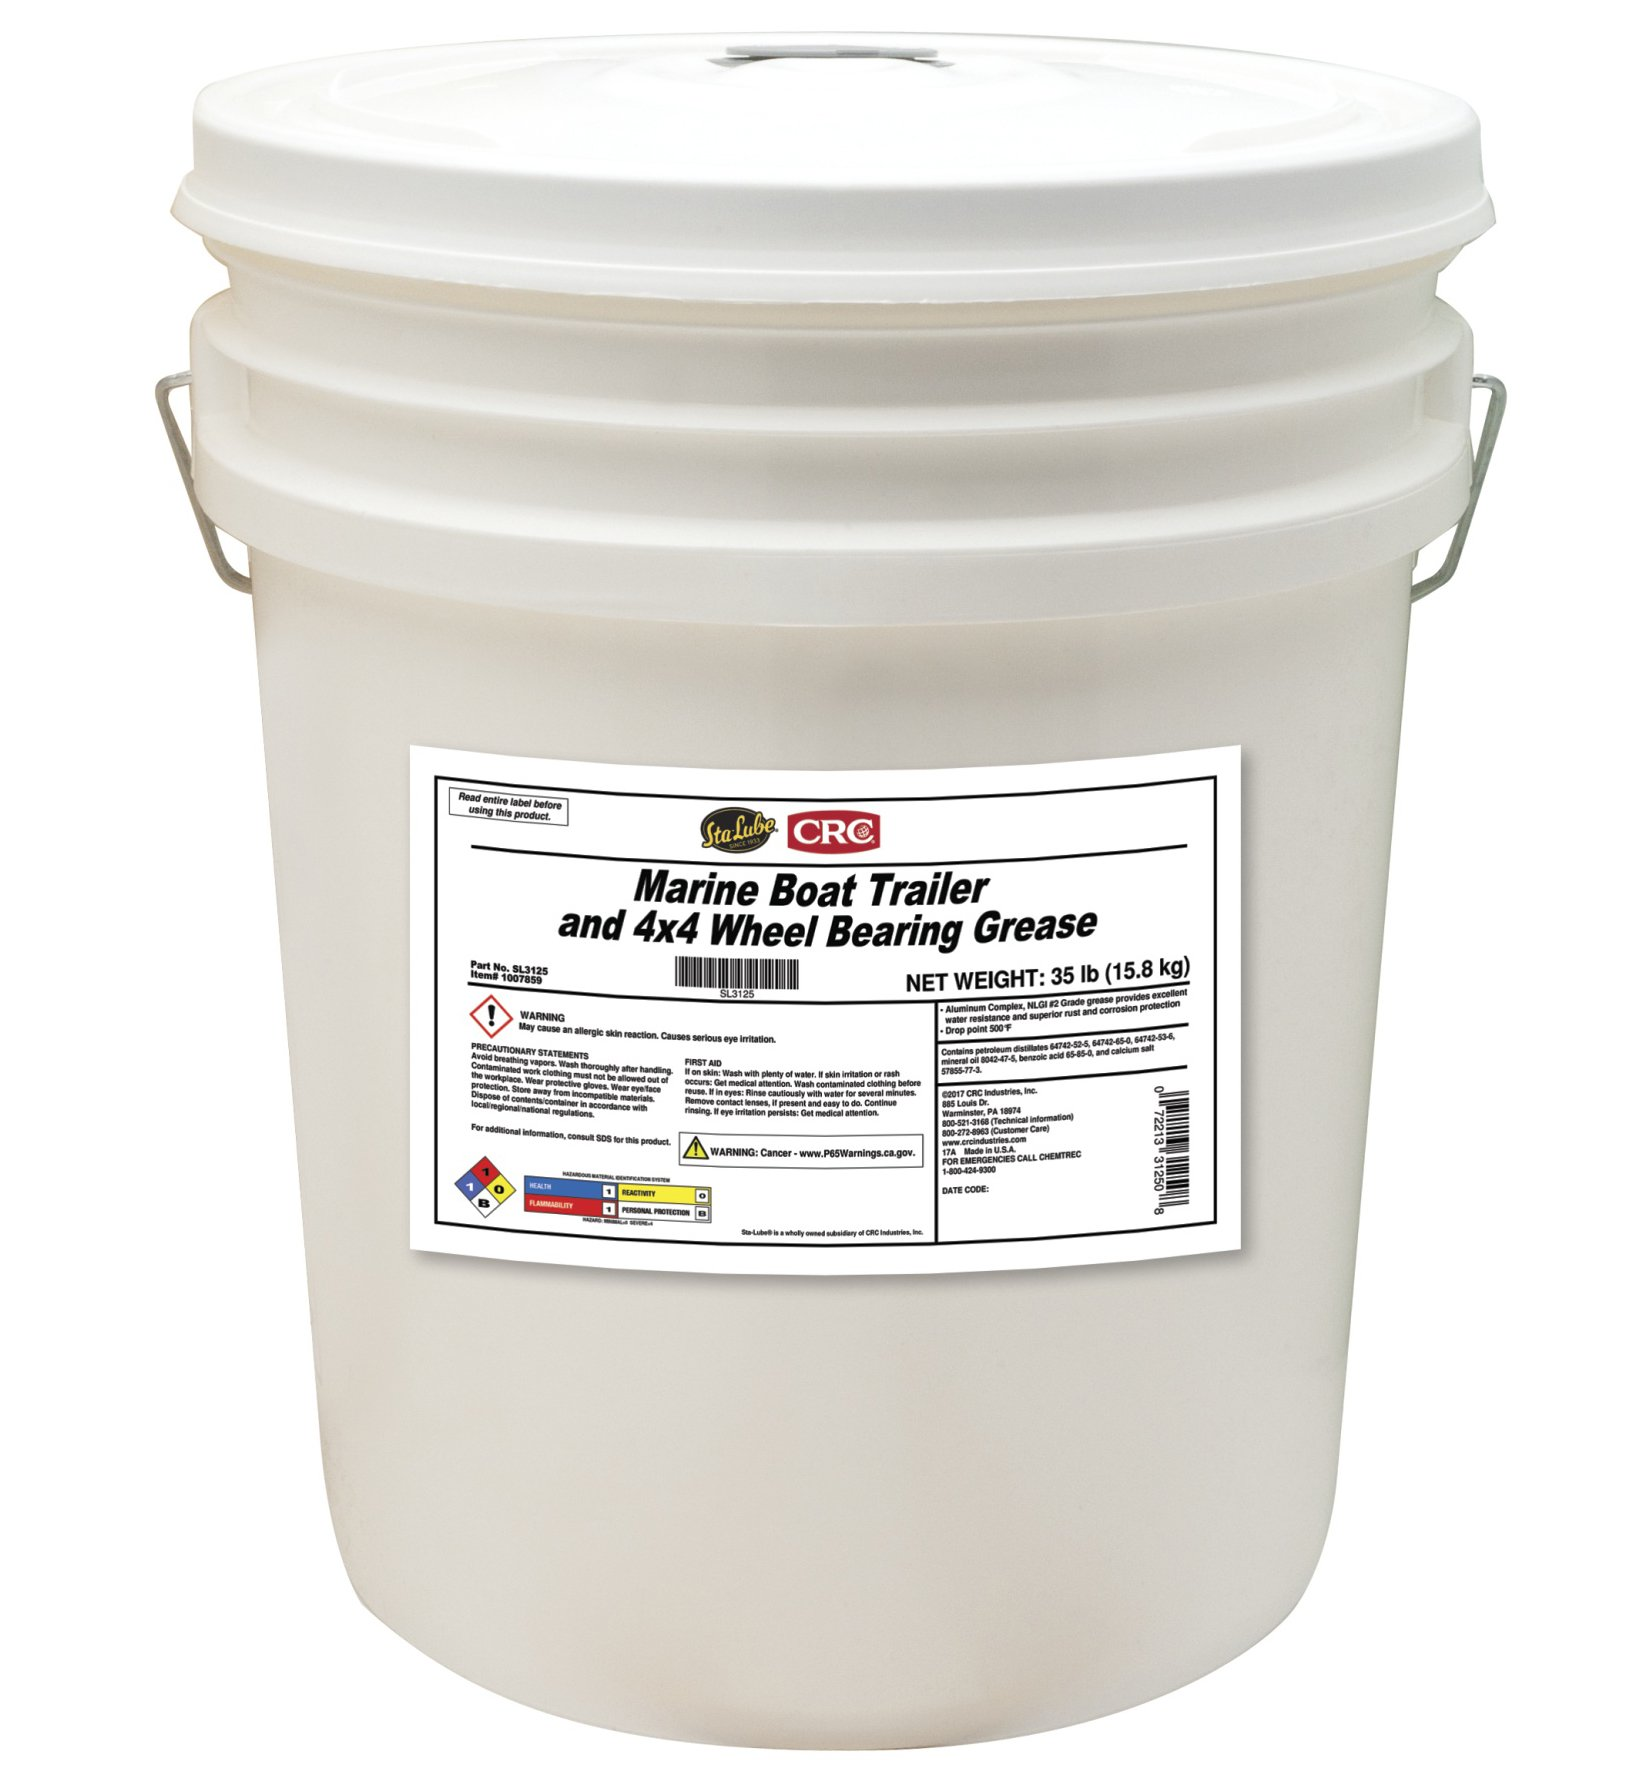 Sta-Lube SL3125 Marine Boat Trailer and 4X4 Wheel Bearing Grease, 35. Fluid_Ounces by Sta-Lube